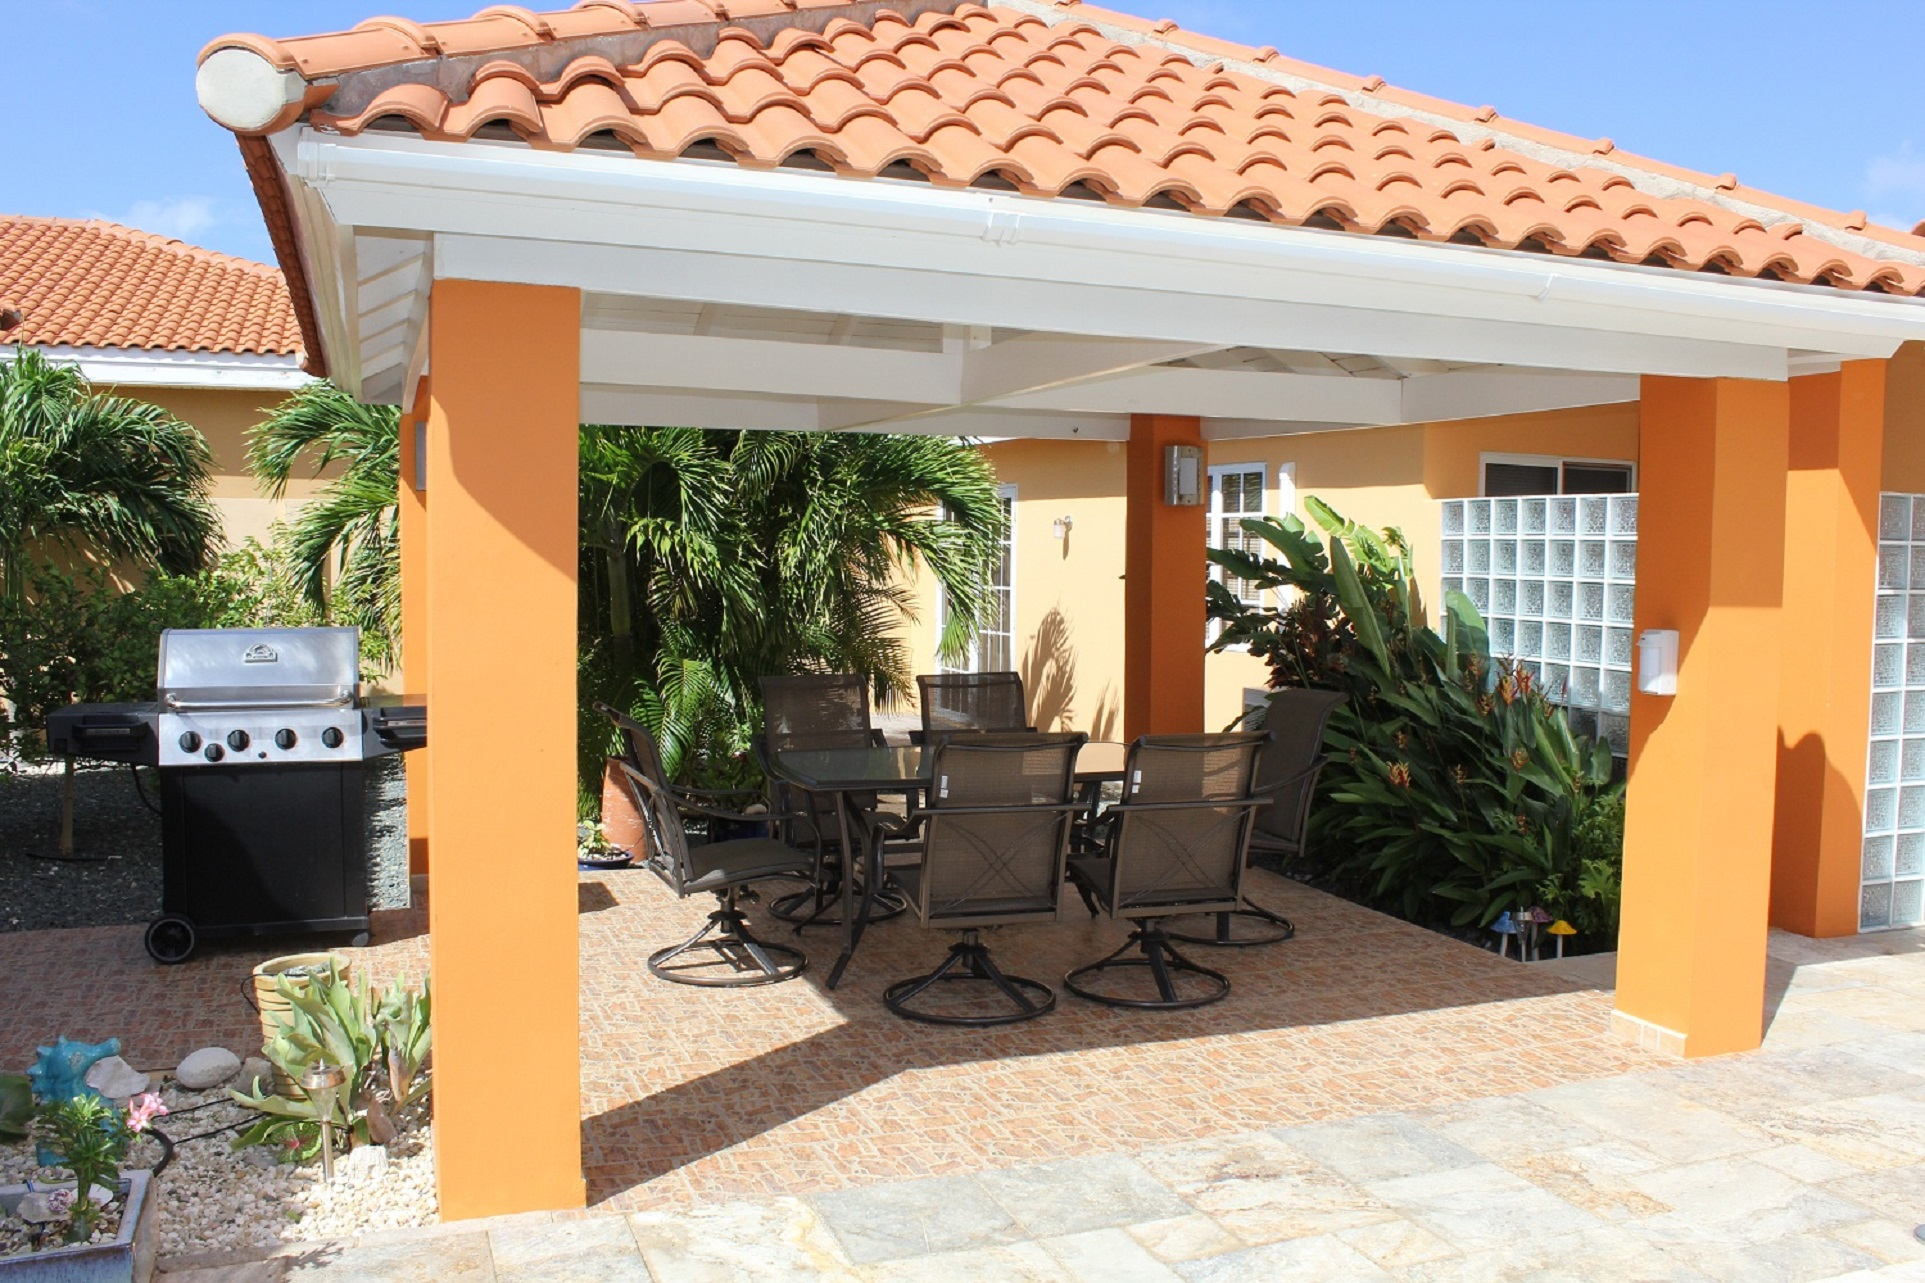 Apartment Aruba Day Dreams  only minutes drive away from the best beaches photo 23183125